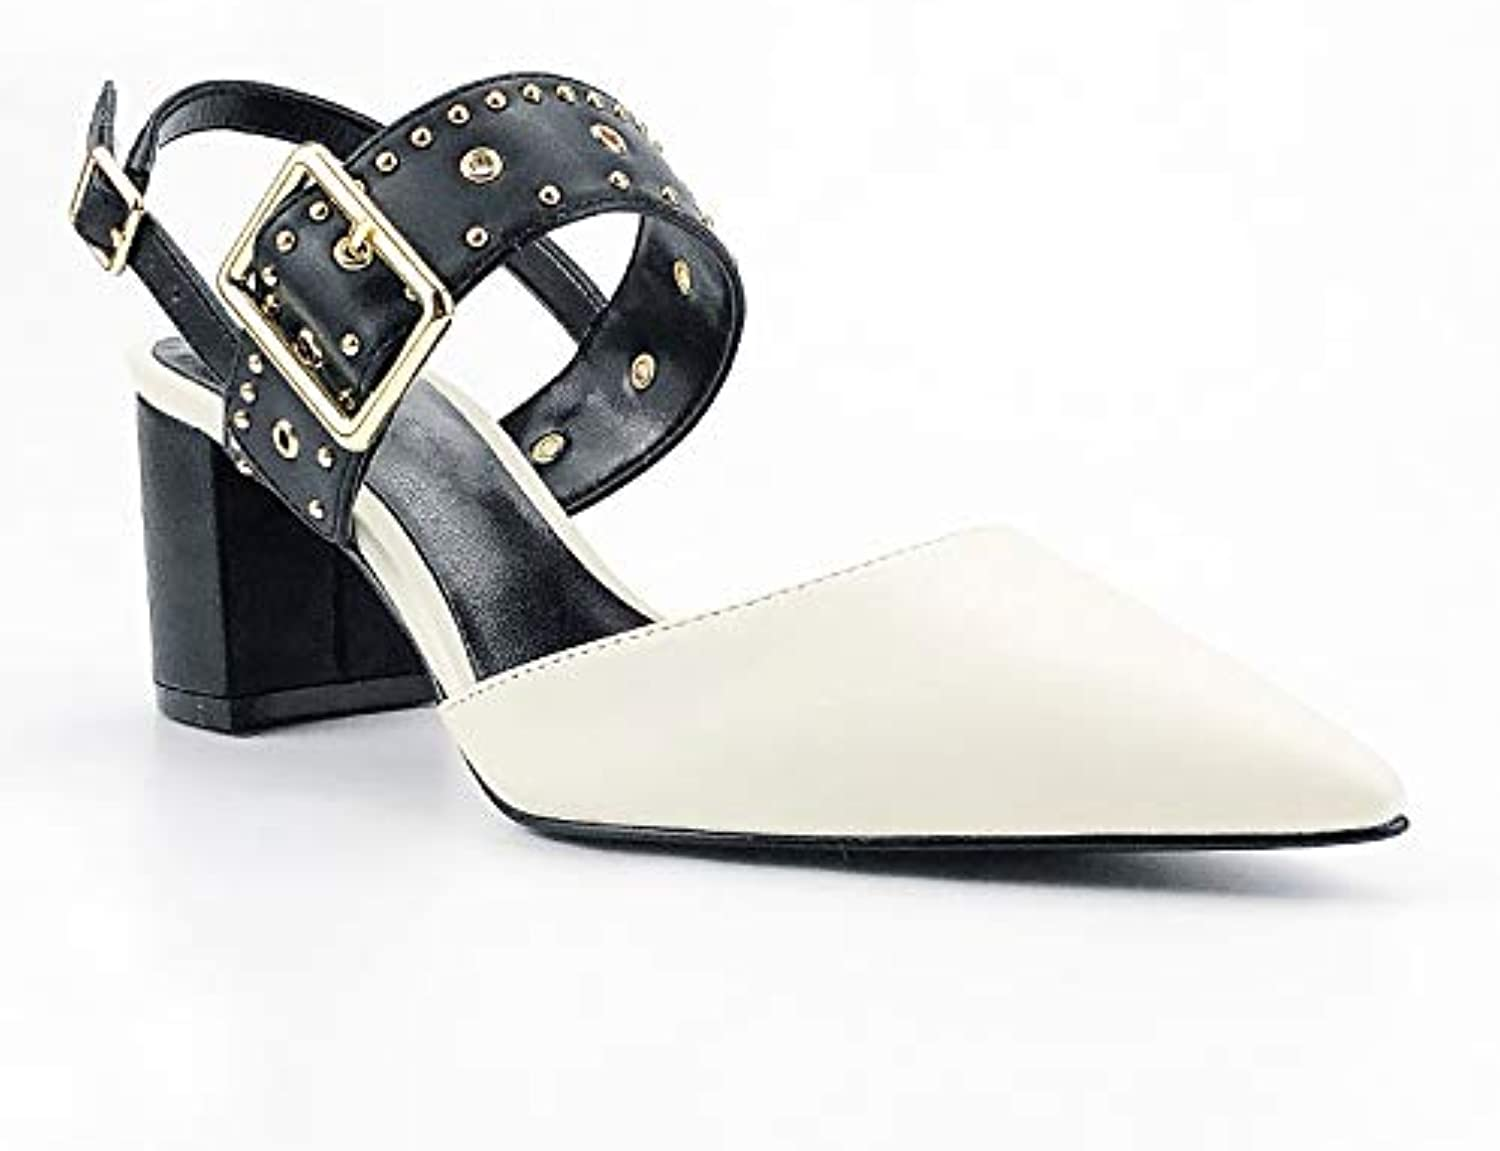 T-JULY White Sandals Fashion Women shoes Office Lady Square 6cm Middle Heels Buckle Strap Comfortable Female Pumps